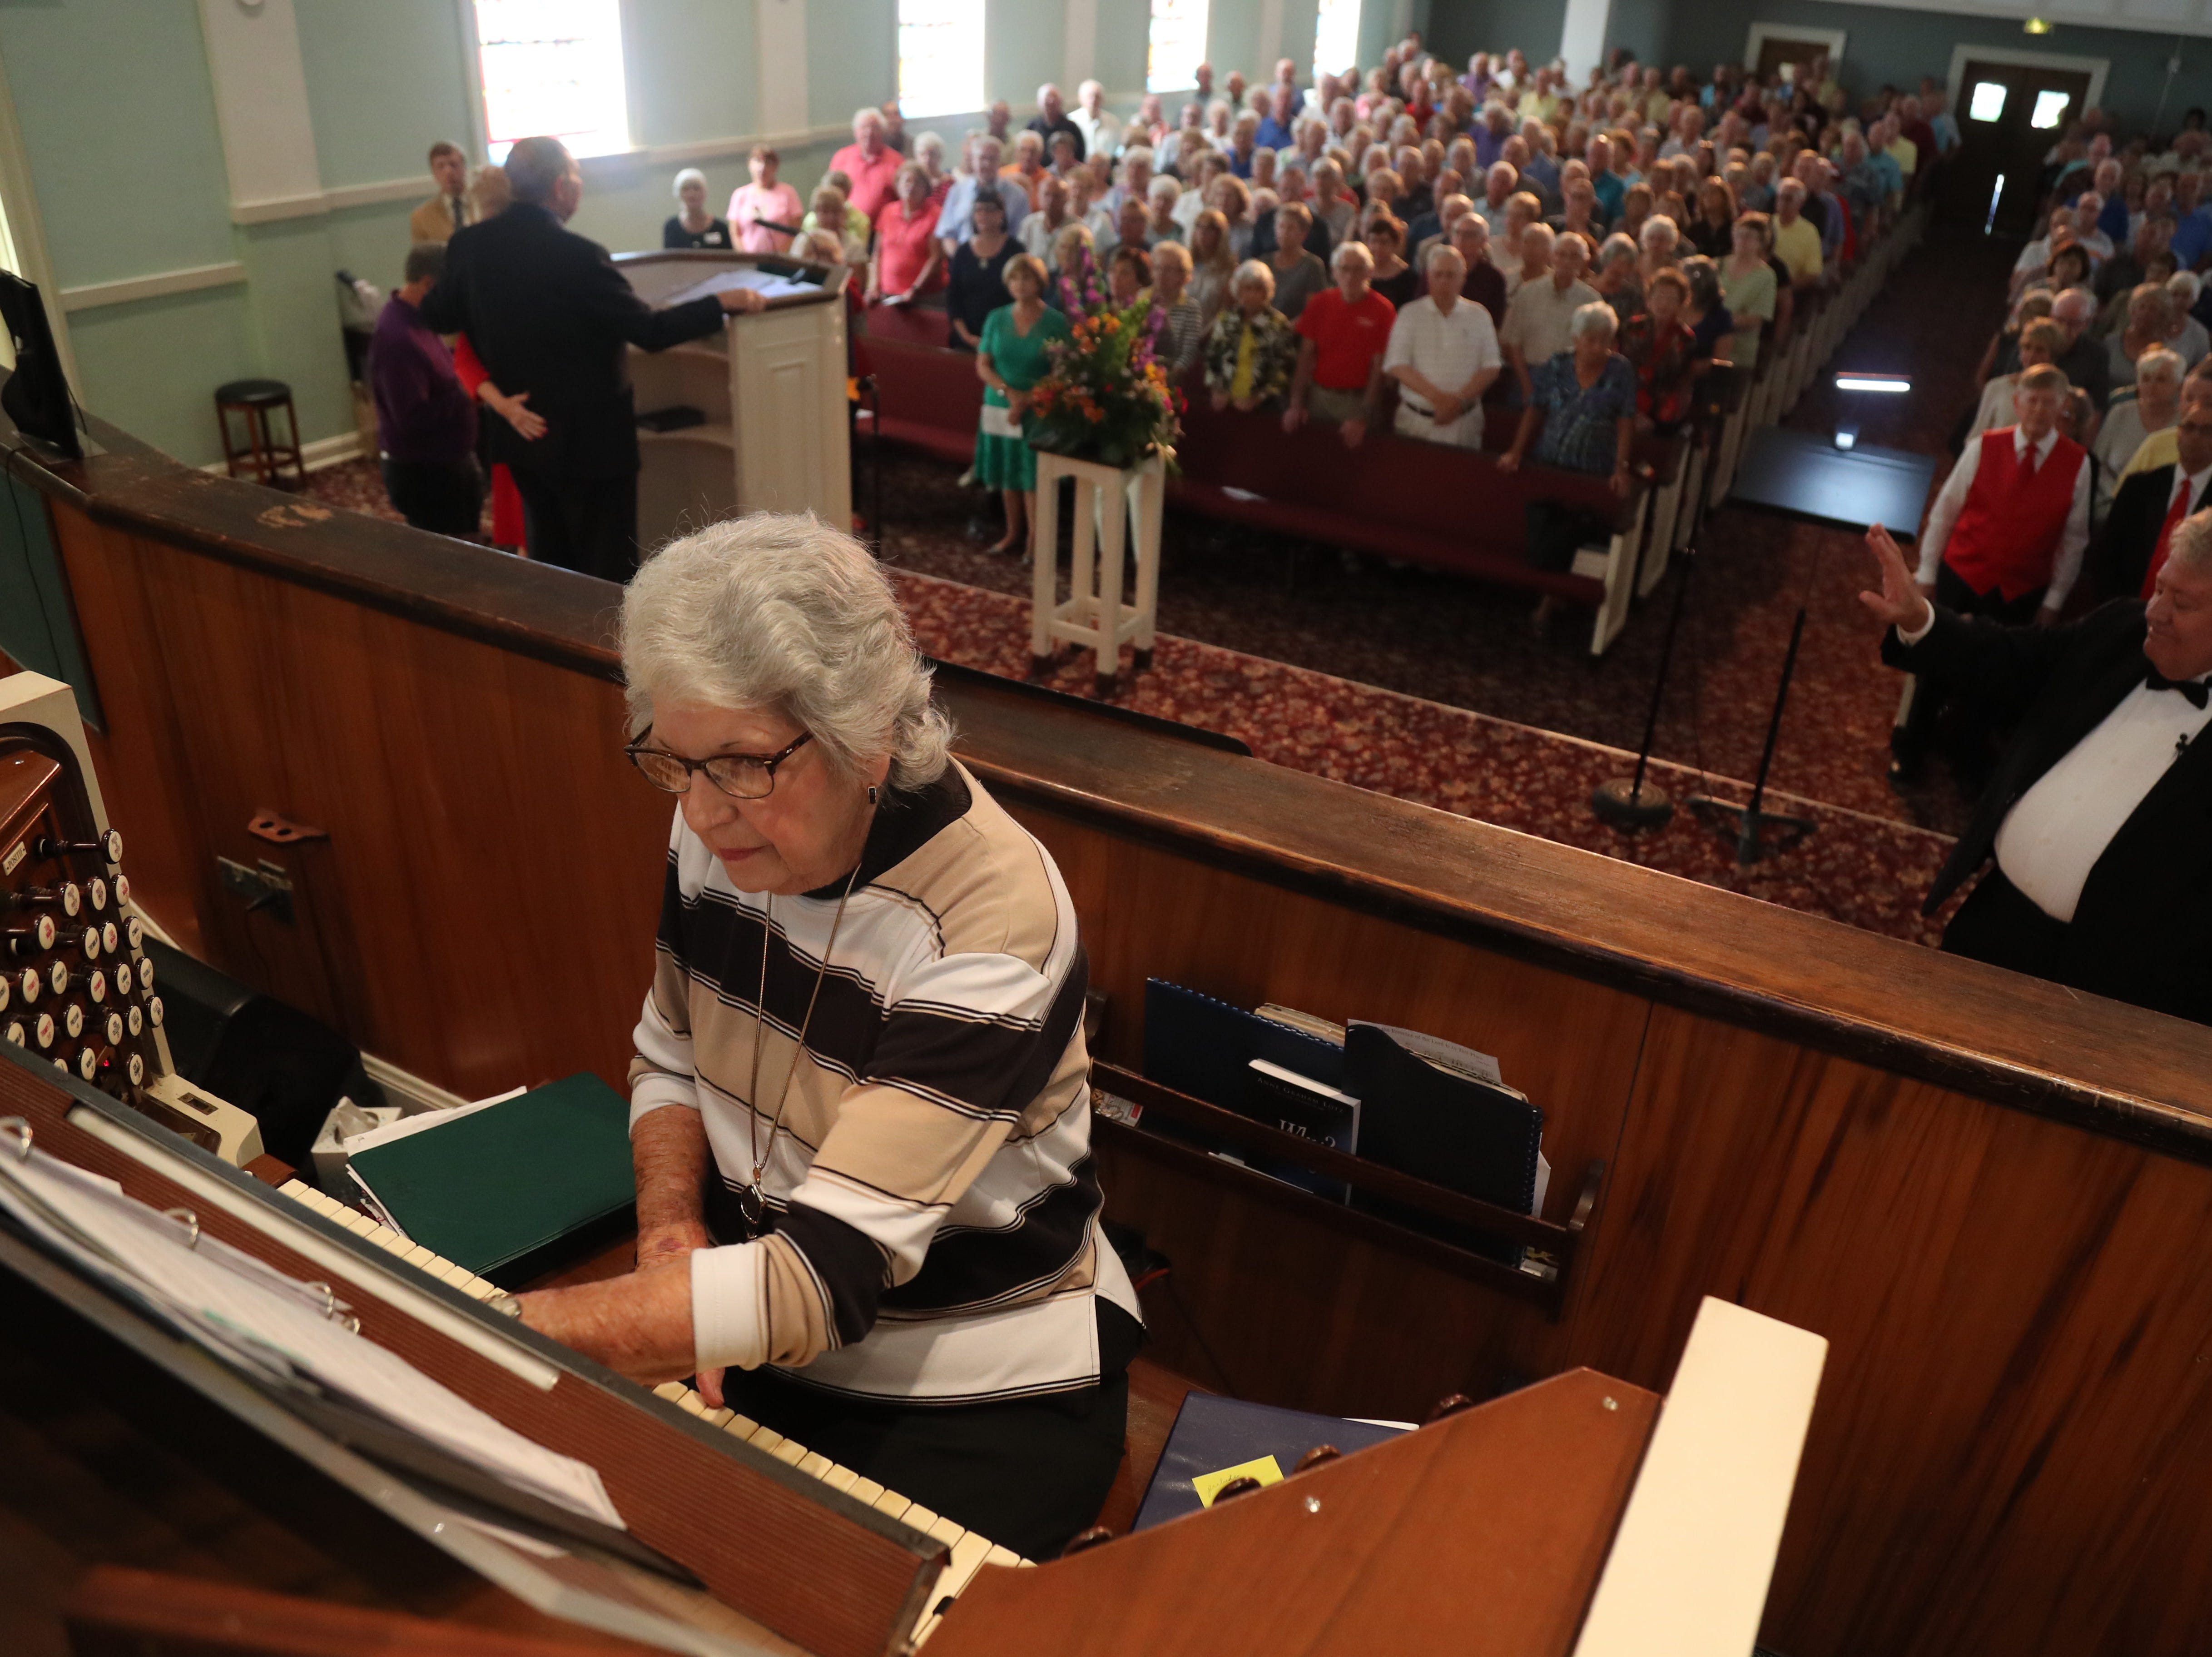 A large crowd gathered Tuesday, Feb. 5, 2019 for the 30th Annual Mrs. Edison's Hymn Sing at First Presbyterian Church in Fort Myers. There were so many in attendance that an overflow room was set up to stream the event.